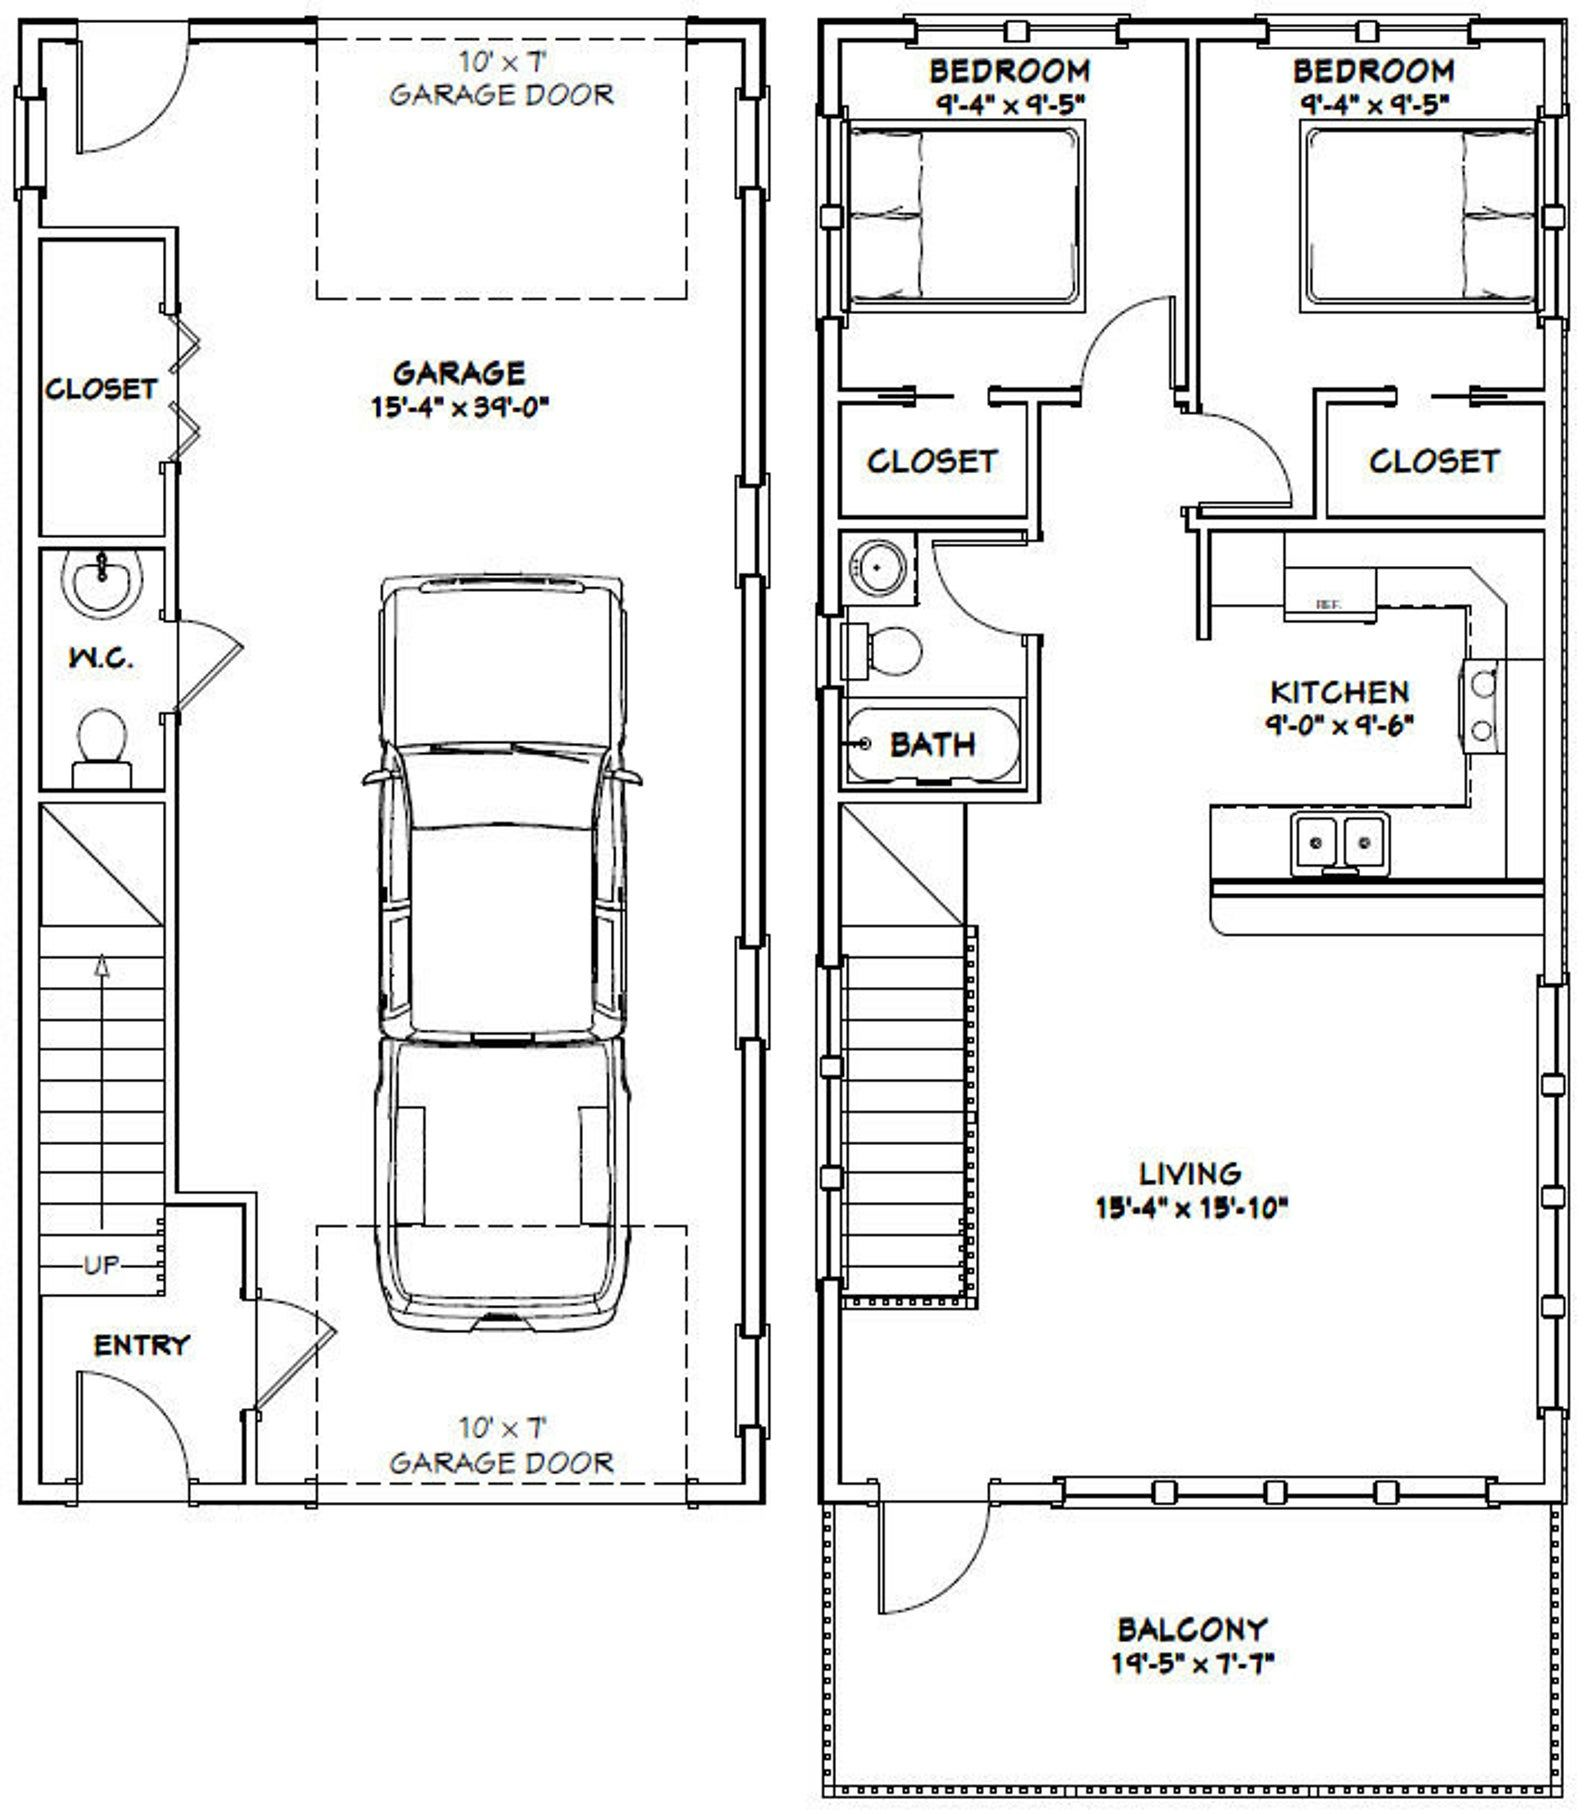 8x8 House -- 8 Bedroom 8.8 Bath -- 889 sq ft -- PDF Floor Plan